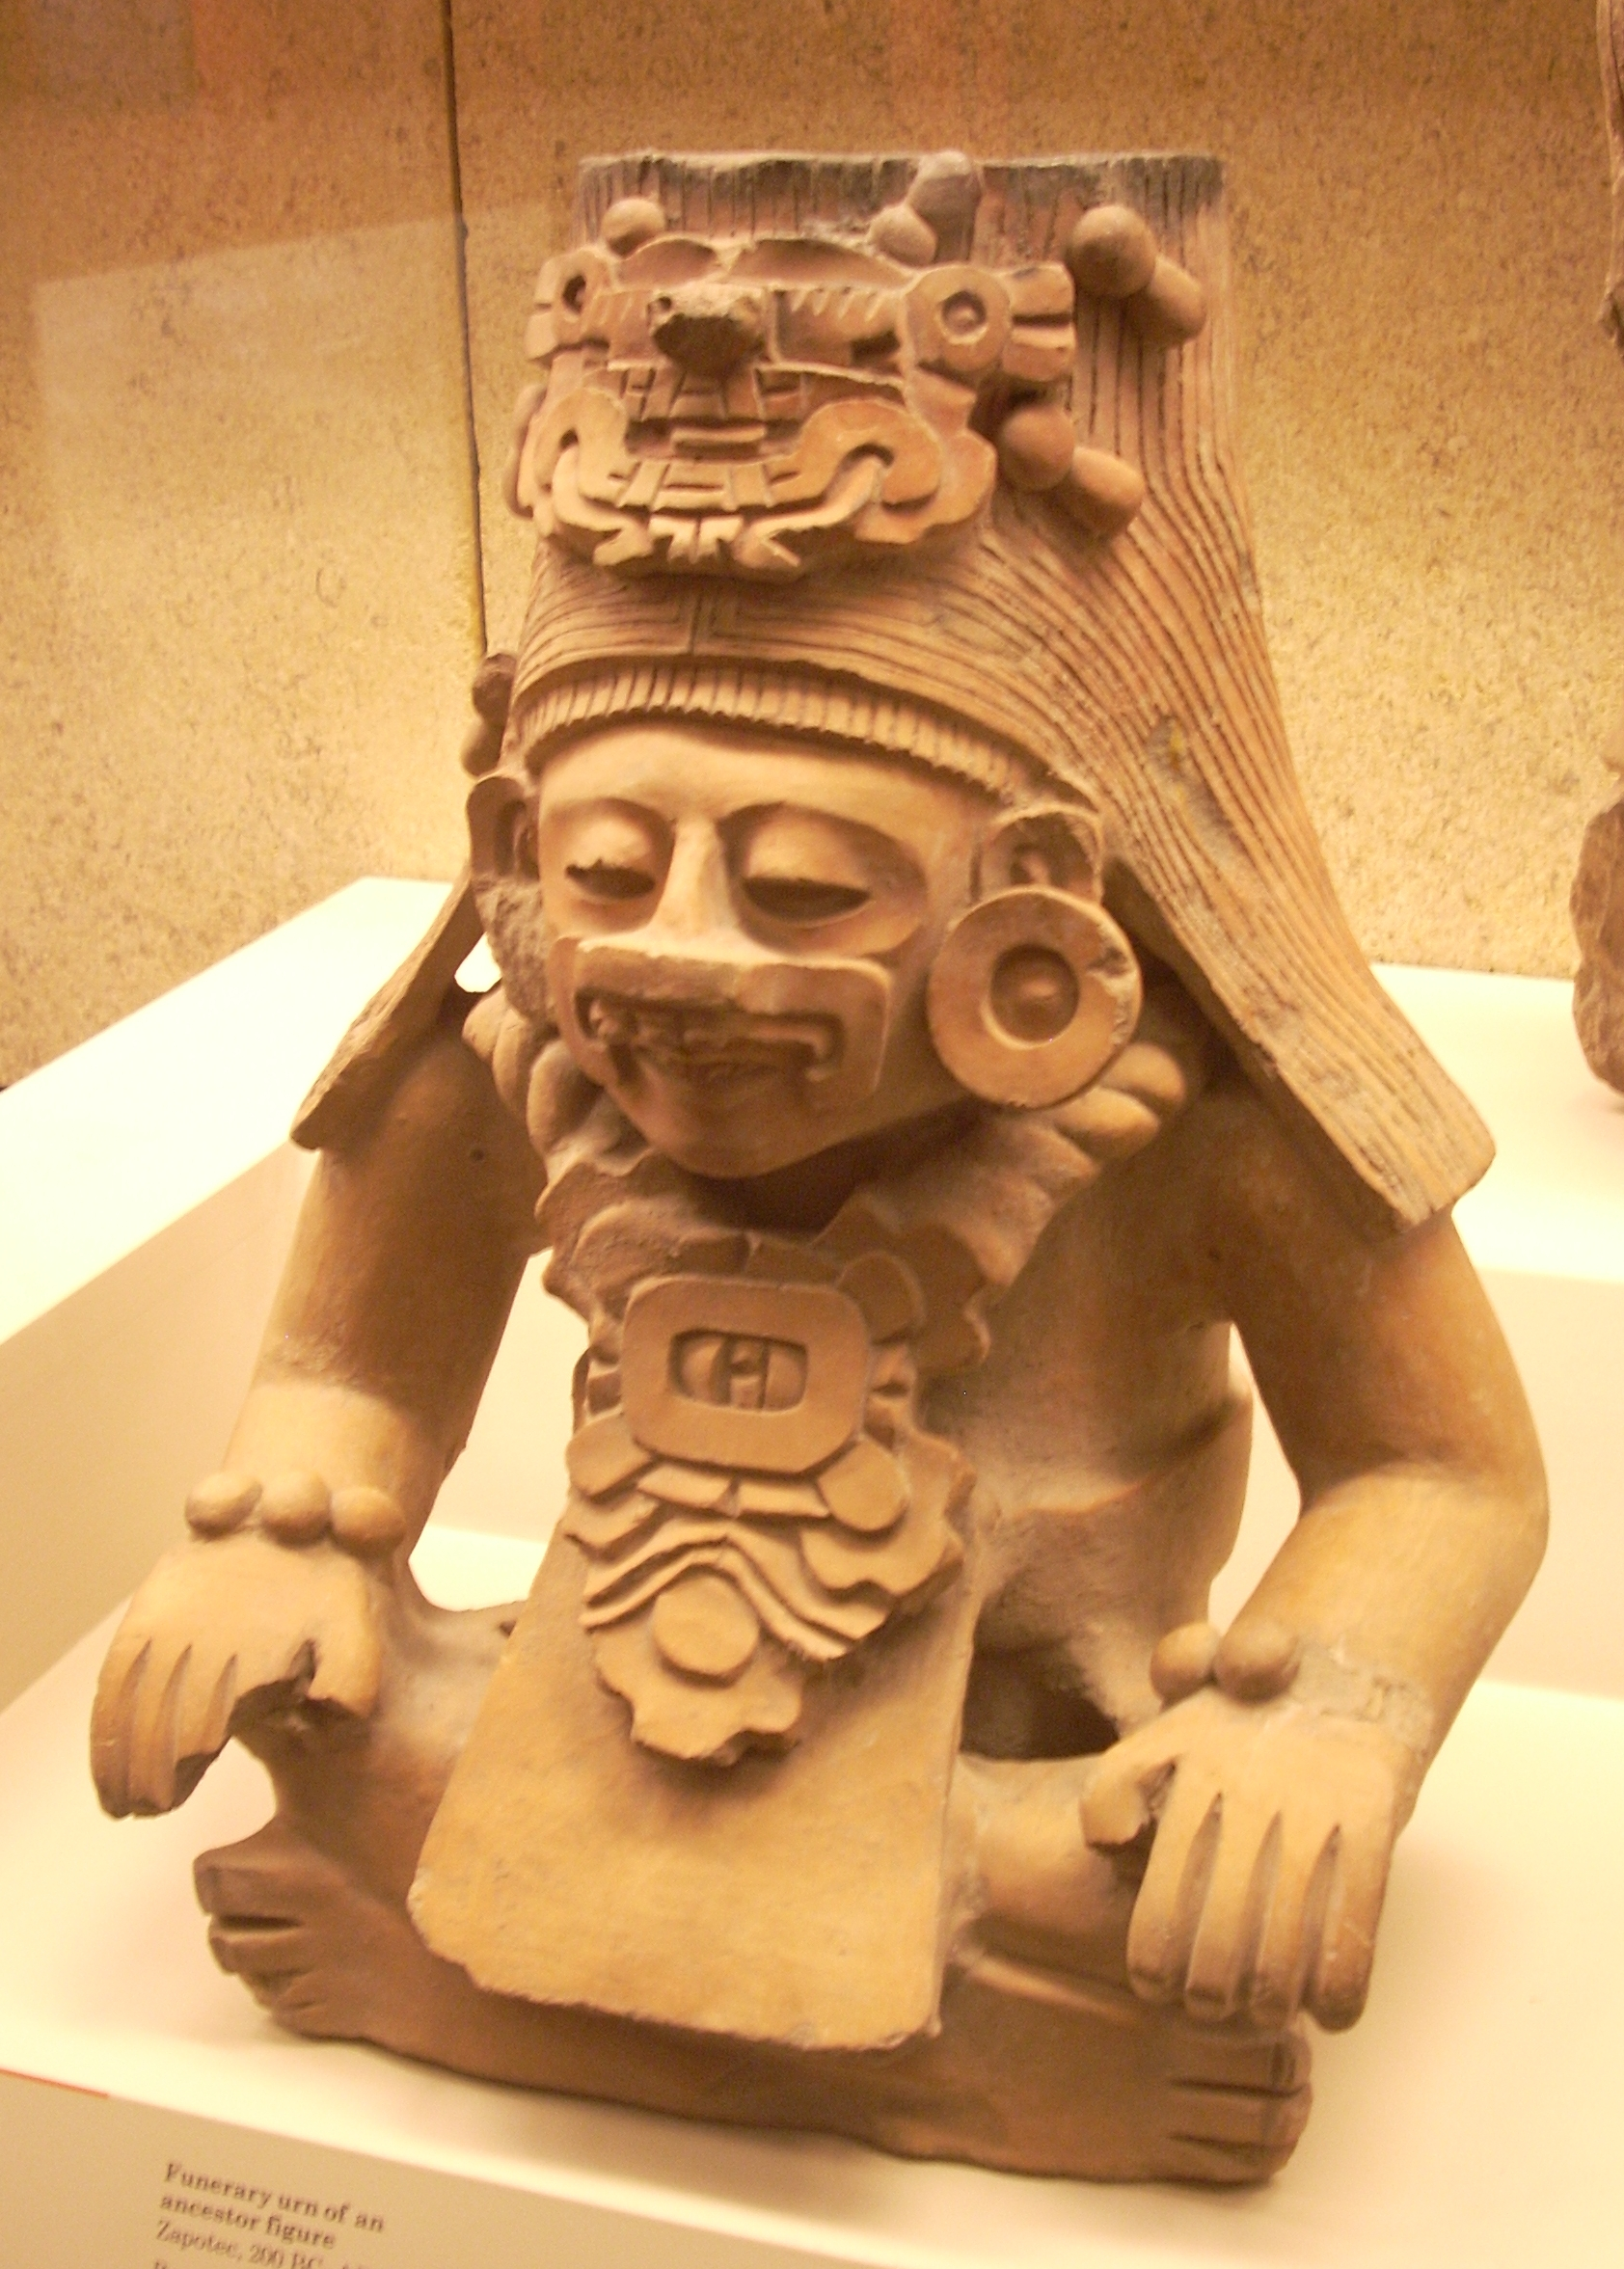 Zapotec funerary urn from the British Museum